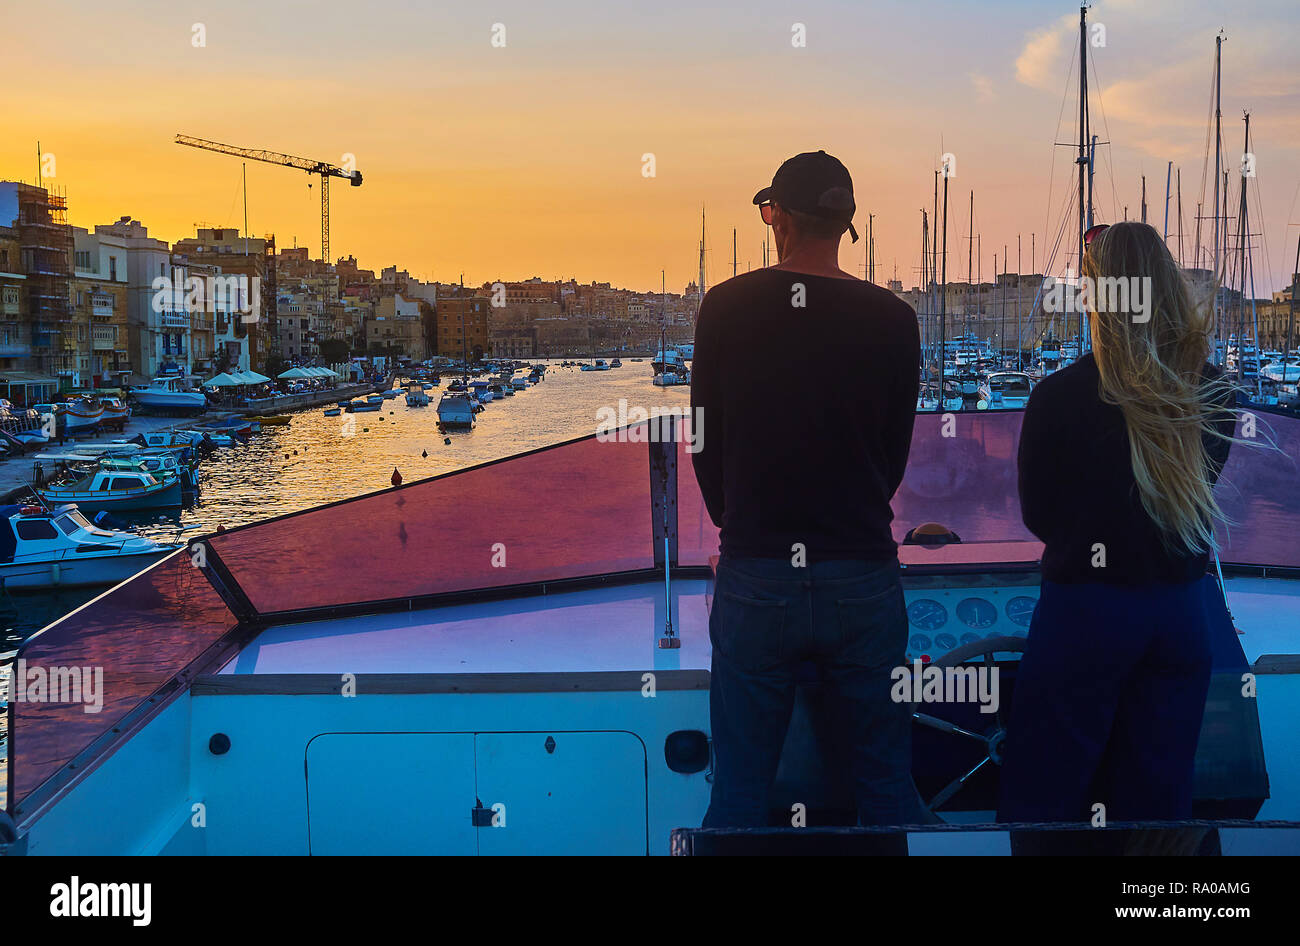 The yachtsmen enjoy the sunset above Senglea at the helm of the ship in waters of Vittoriosa marina, Malta. - Stock Image